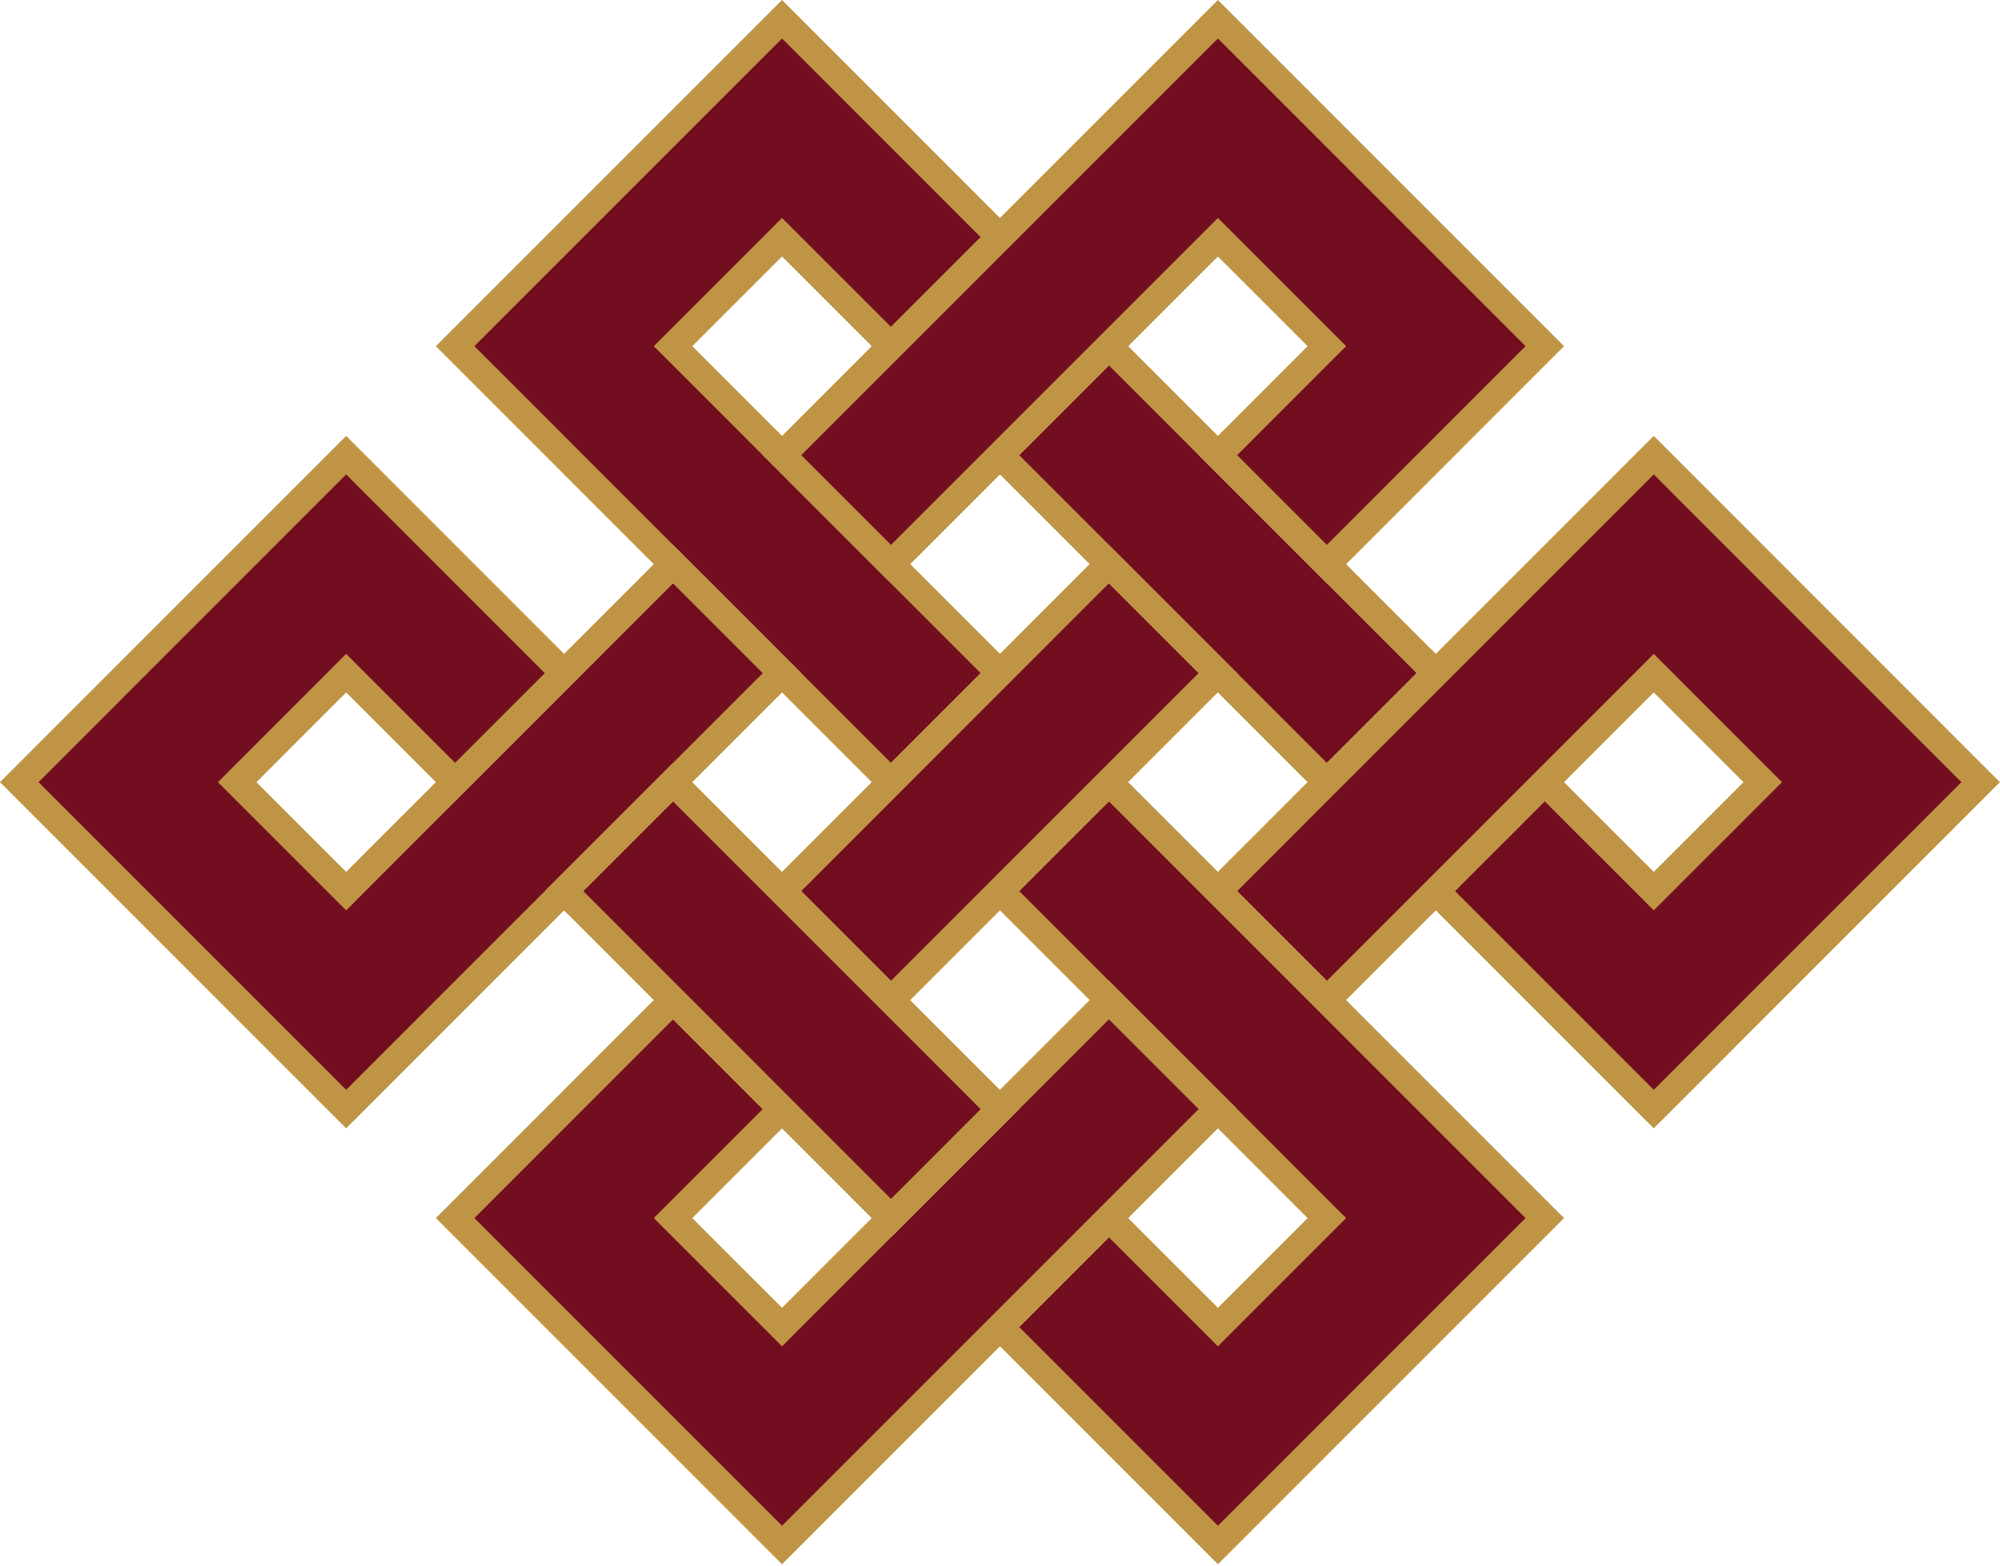 Infinity knot png. File endlessknot svg wikimedia